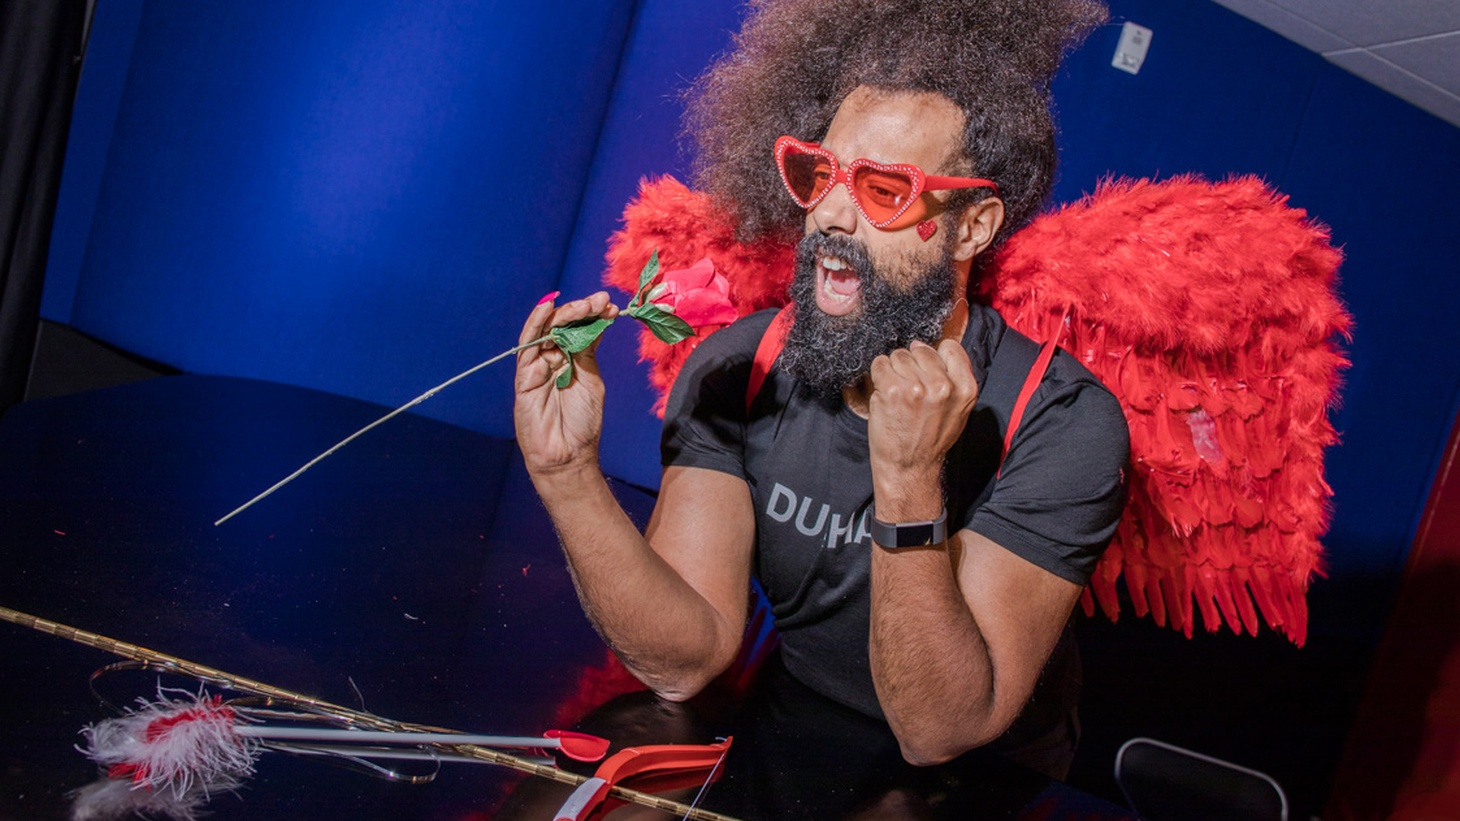 Eccentric, hilarious and endlessly creative, Reggie Watts is truly one of a kind. We called on the comedian/musician/beatboxer/bandleader to give us some lessons on love for our Valentine's Day special. (10am)